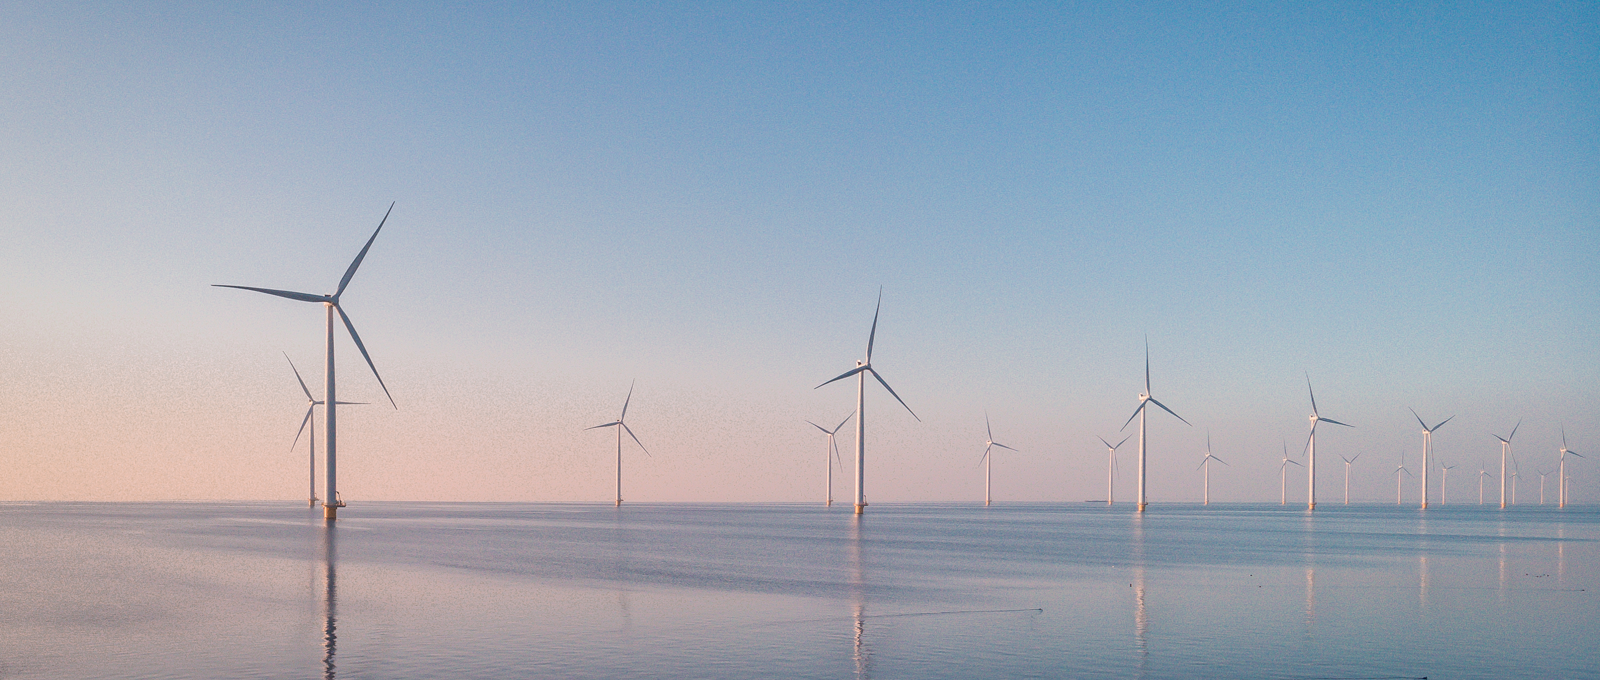 Prysmian finalizes the contract with RWE for Sofia offshore wind farm project  worth over €200 M